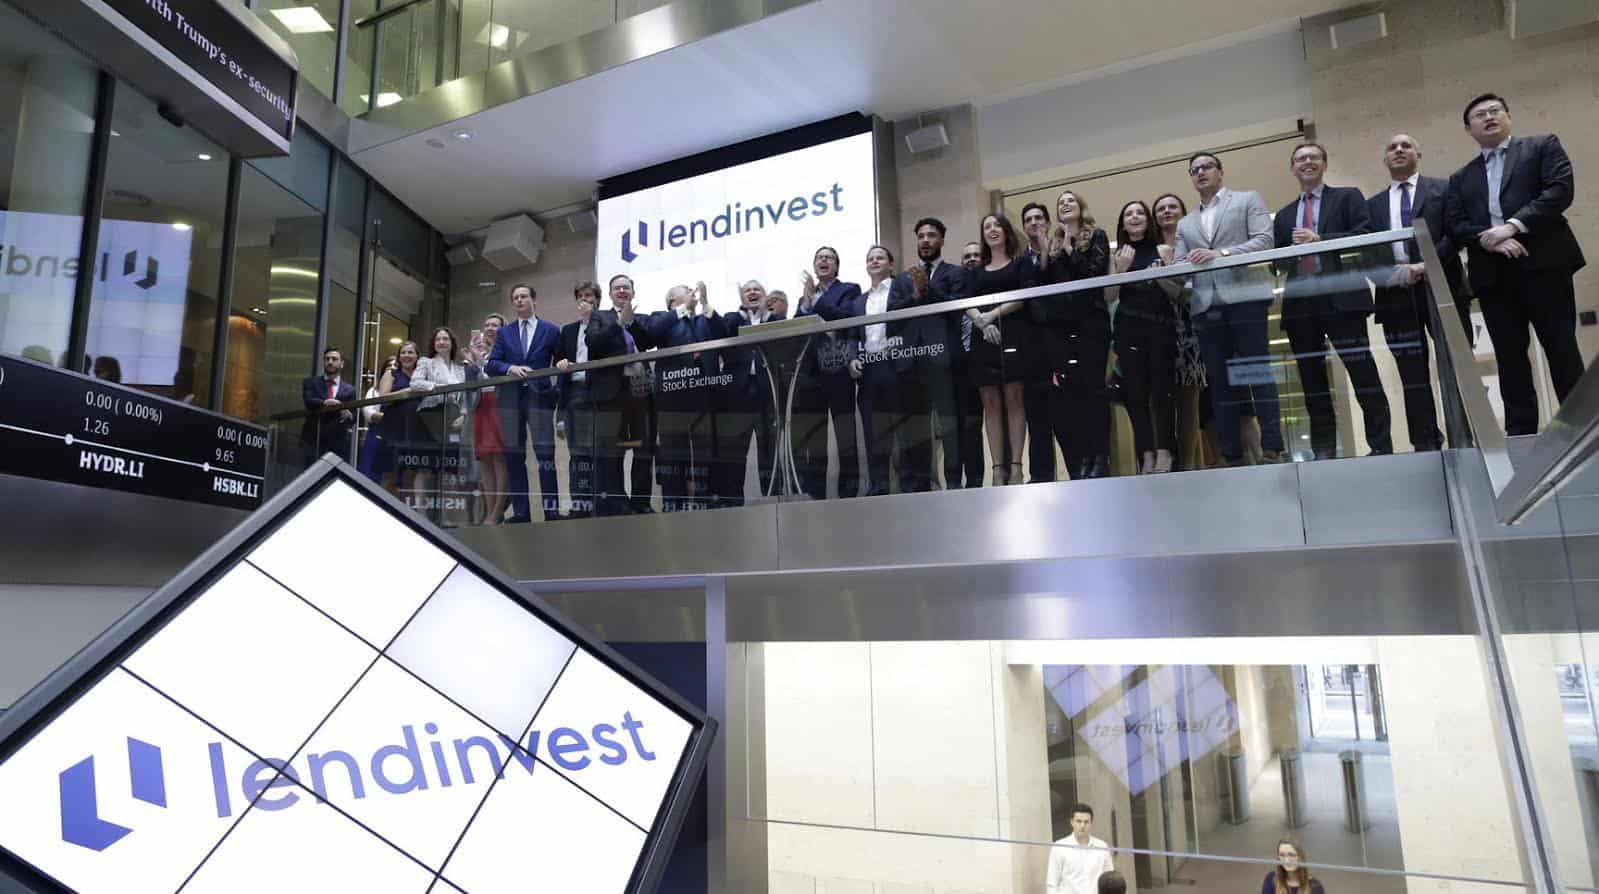 LendInvest Releases Latest Buy-to-Let Index Report That Revealed Northern Markets Challenge the South East